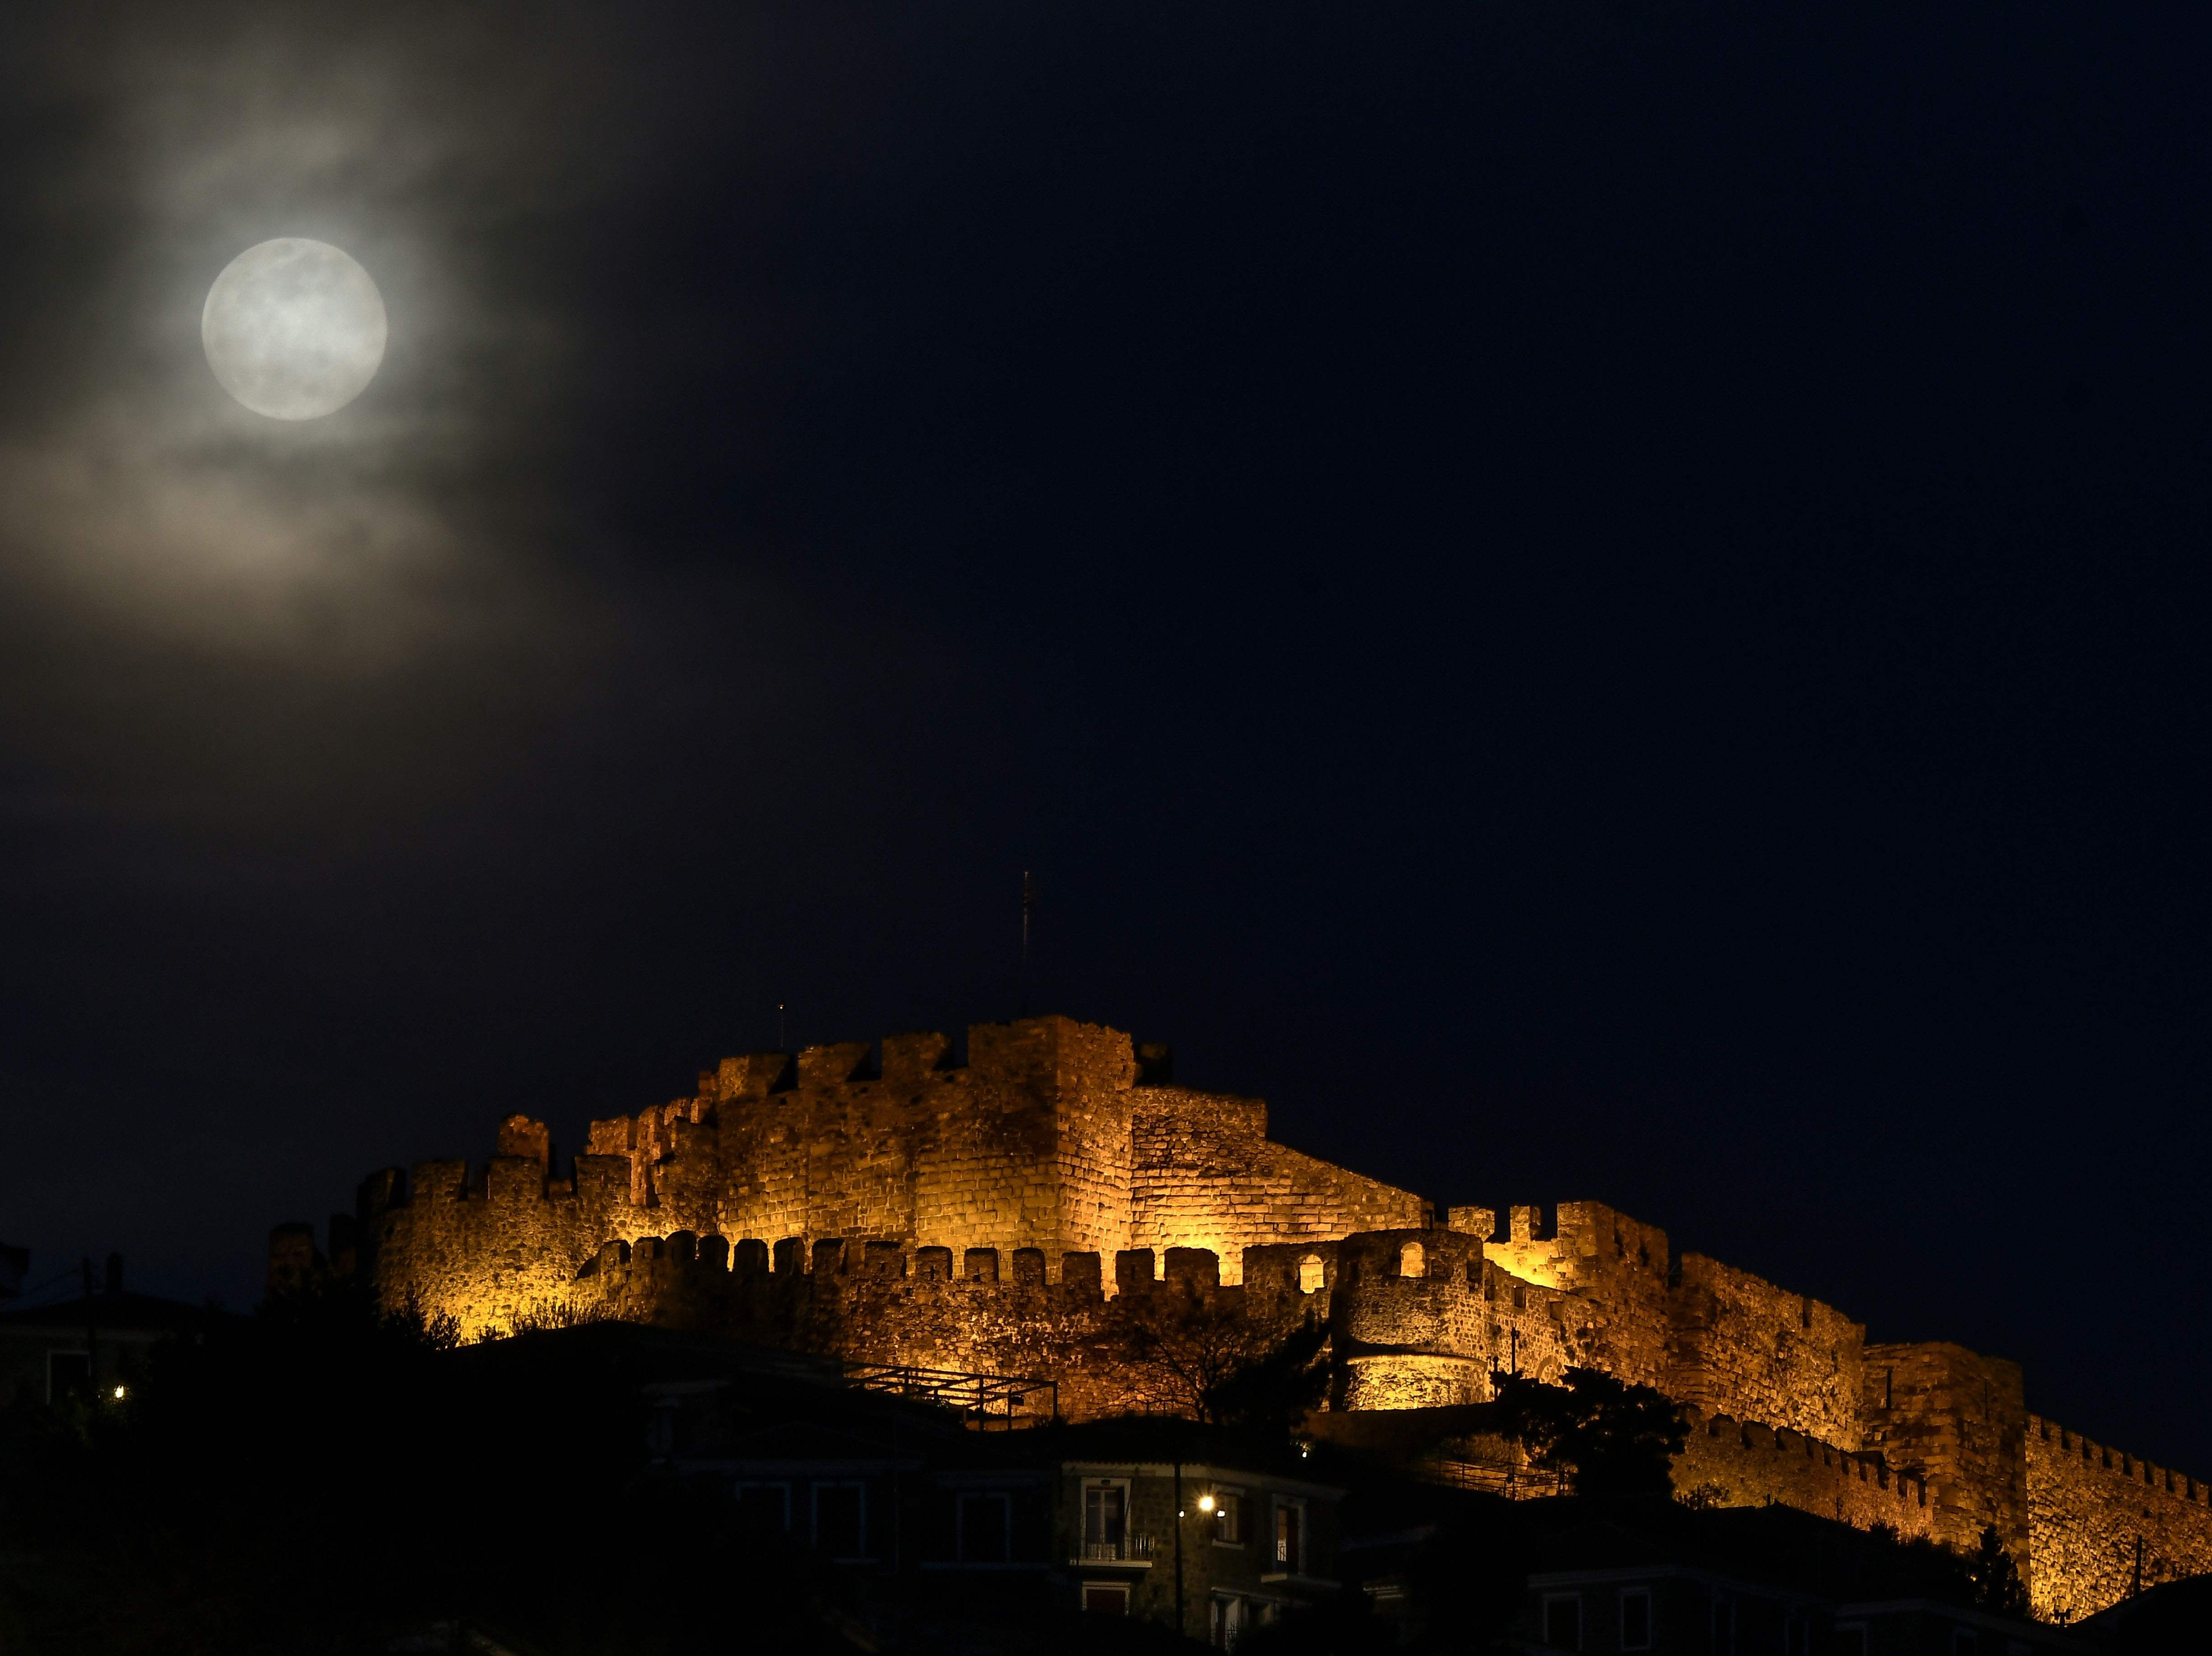 A full moon rises next to the ancient castle of Mithymna Molyvos on the Greek island of Lesbos on March 20, 2019.